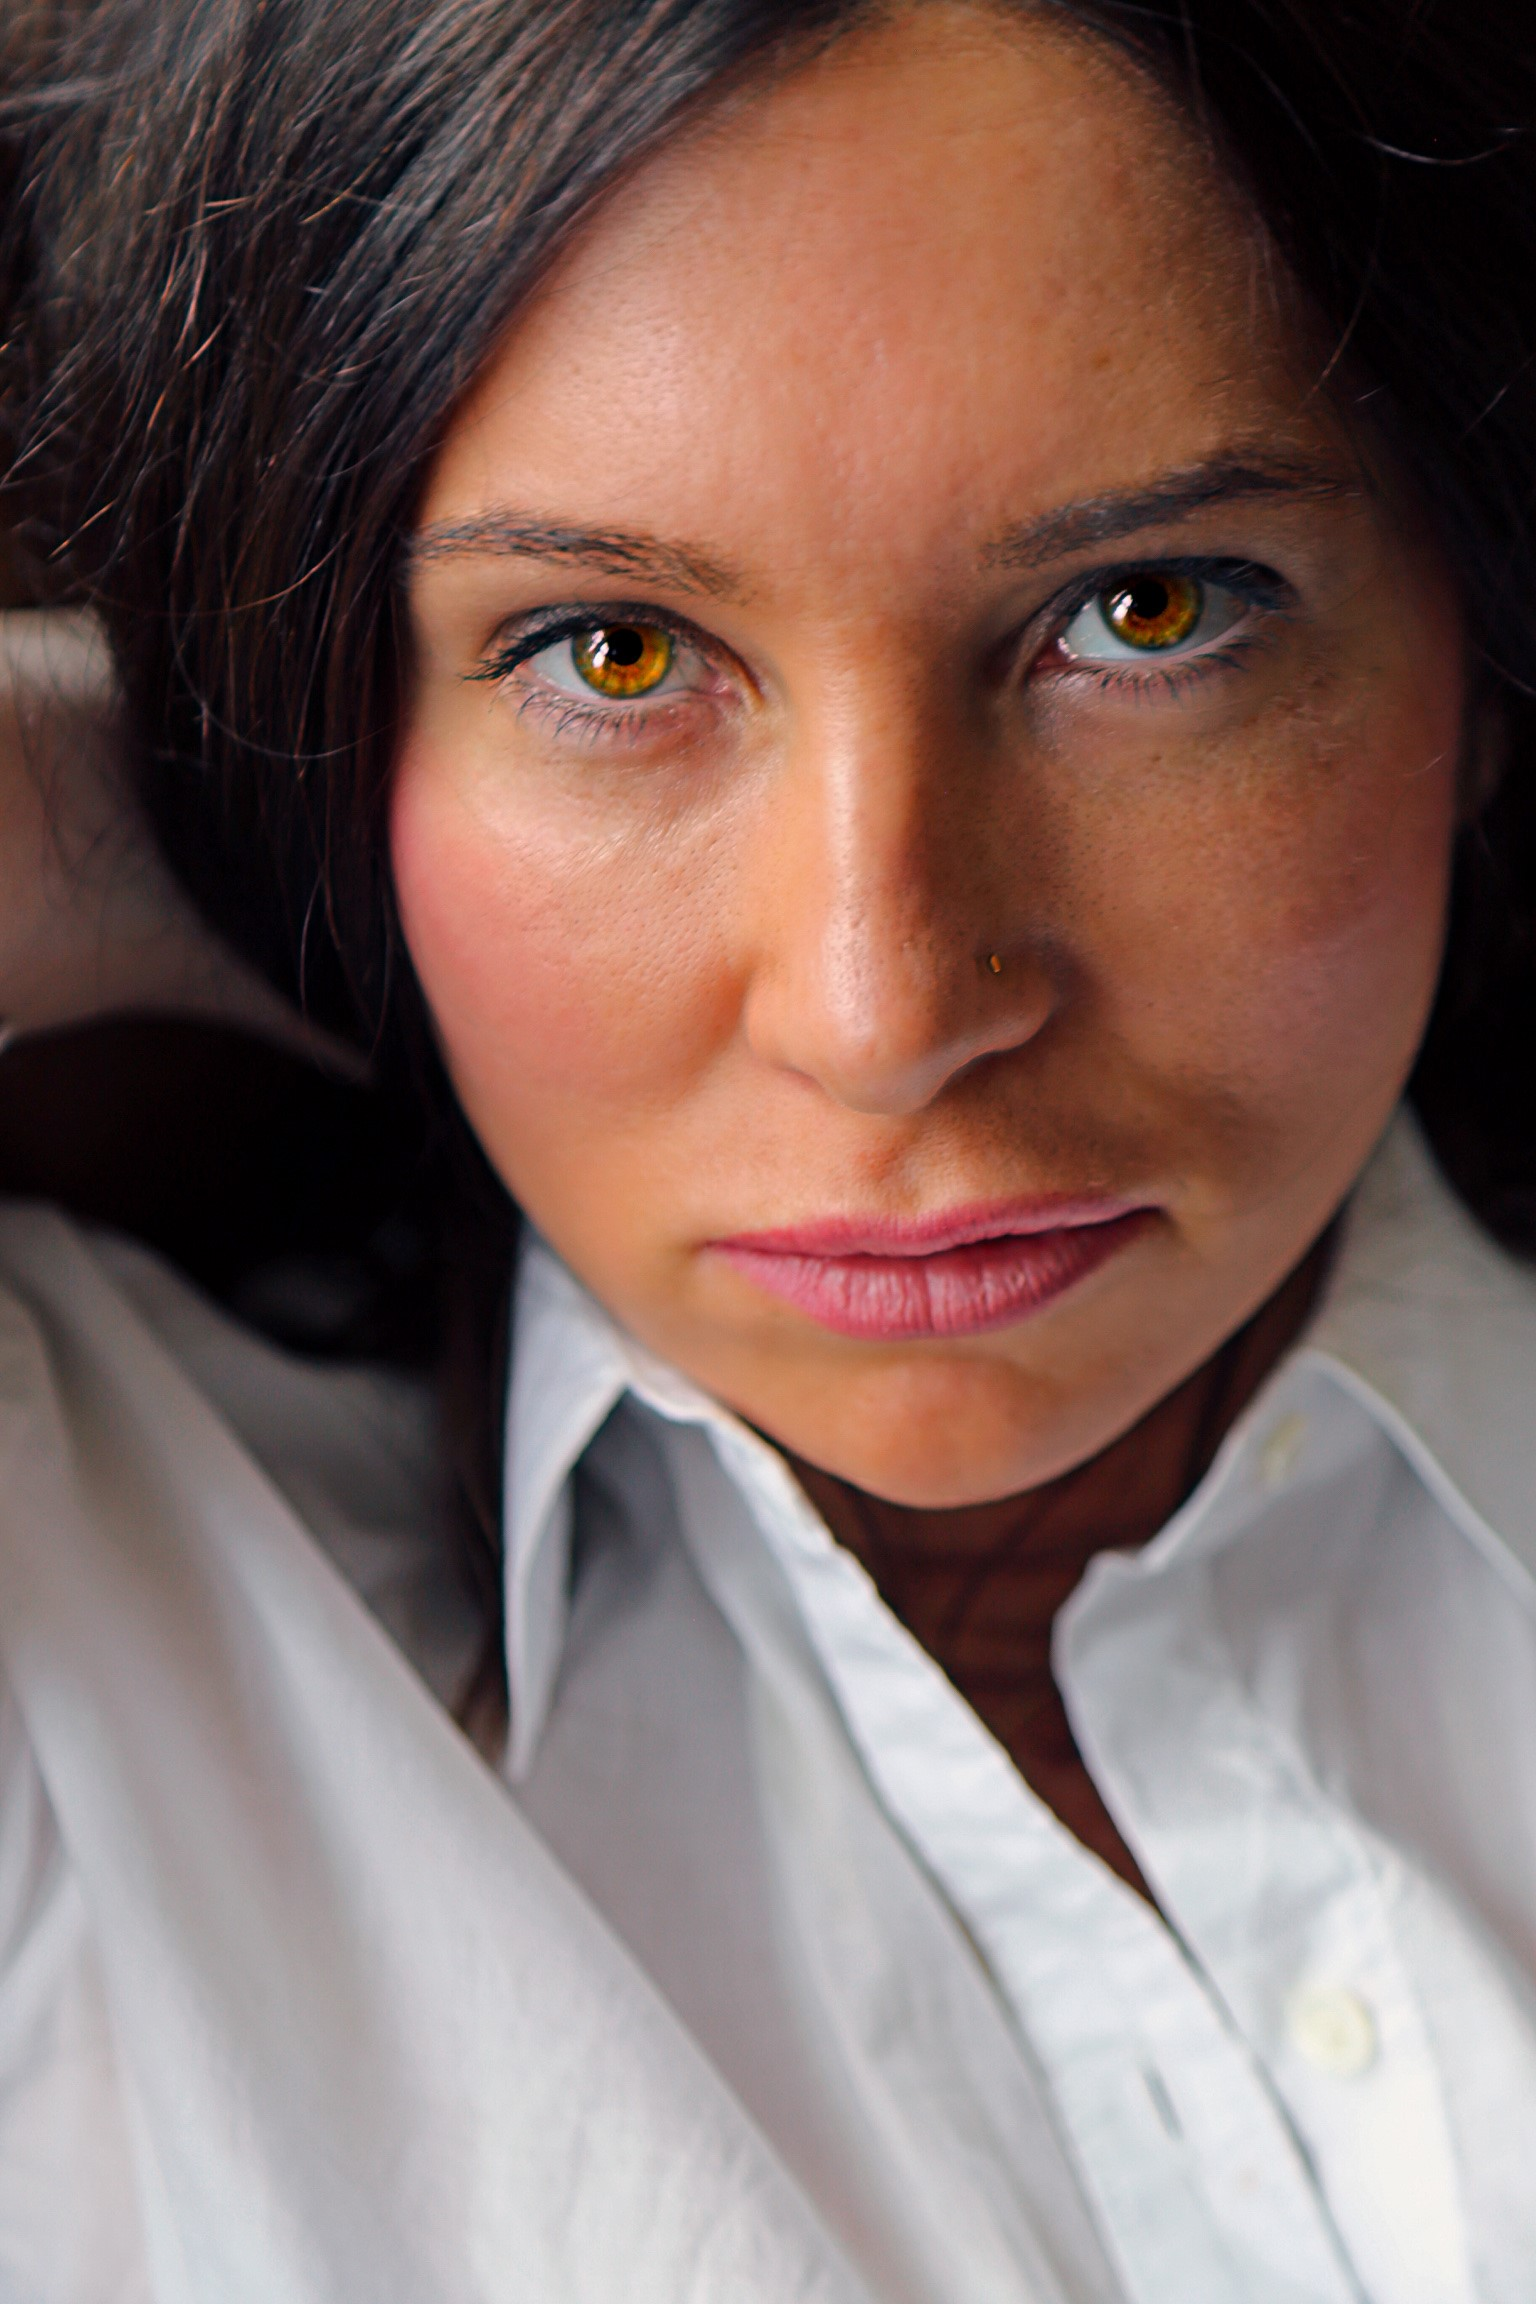 Photograph of Lisa Taddeo, wearing a white shirt, with brown hair, looking at the camera